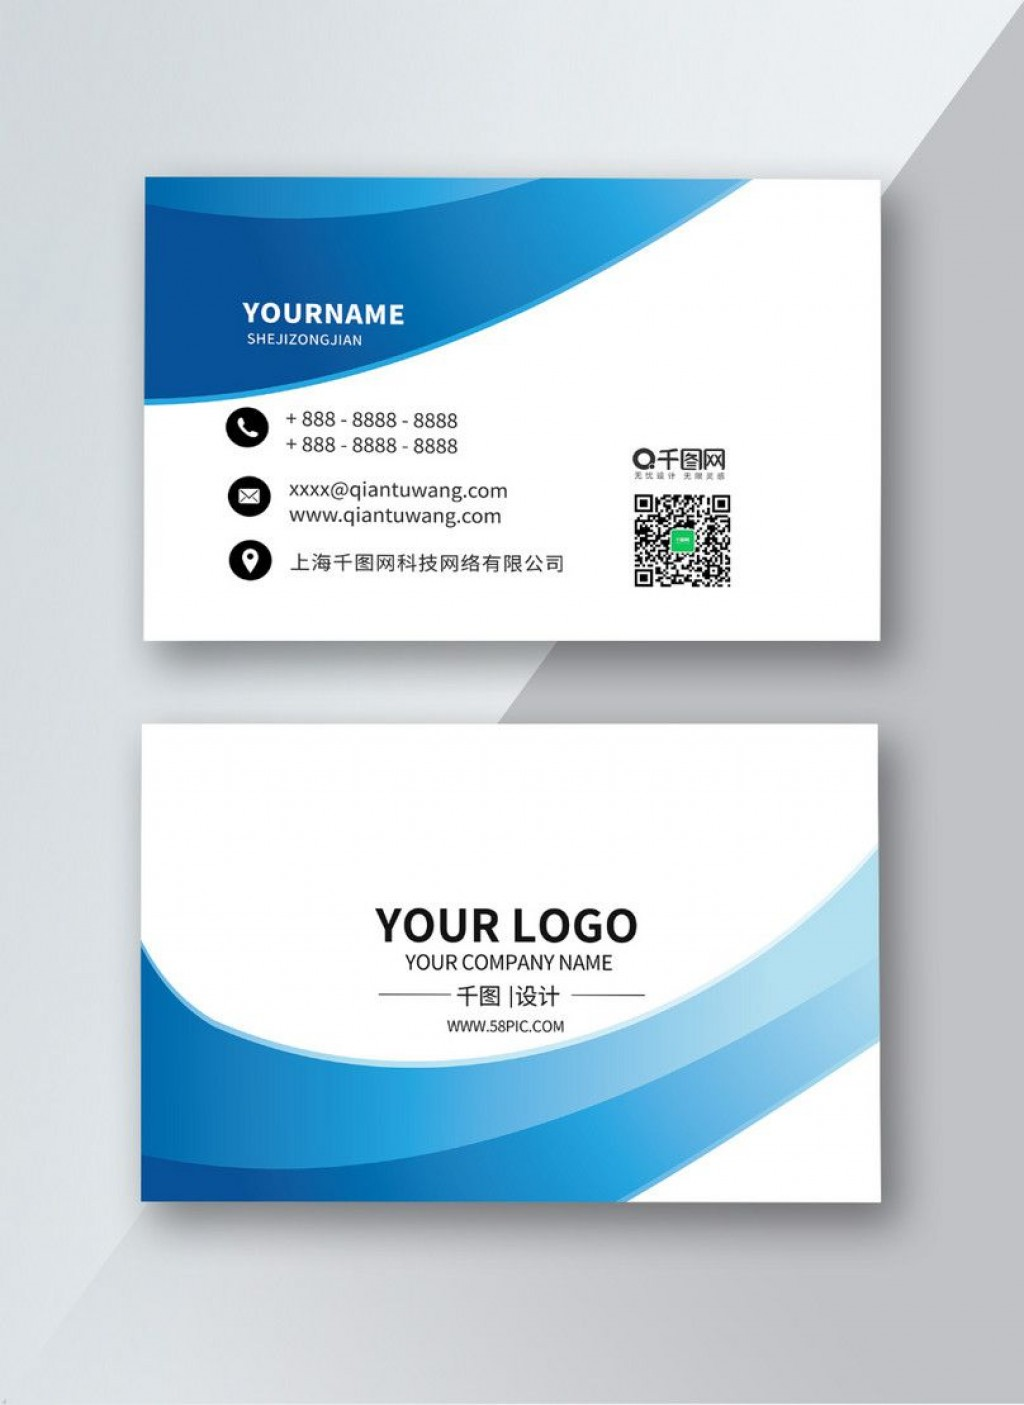 003 Sensational Free Download Busines Card Template High Resolution  For Microsoft Publisher Photoshop PowerpointLarge